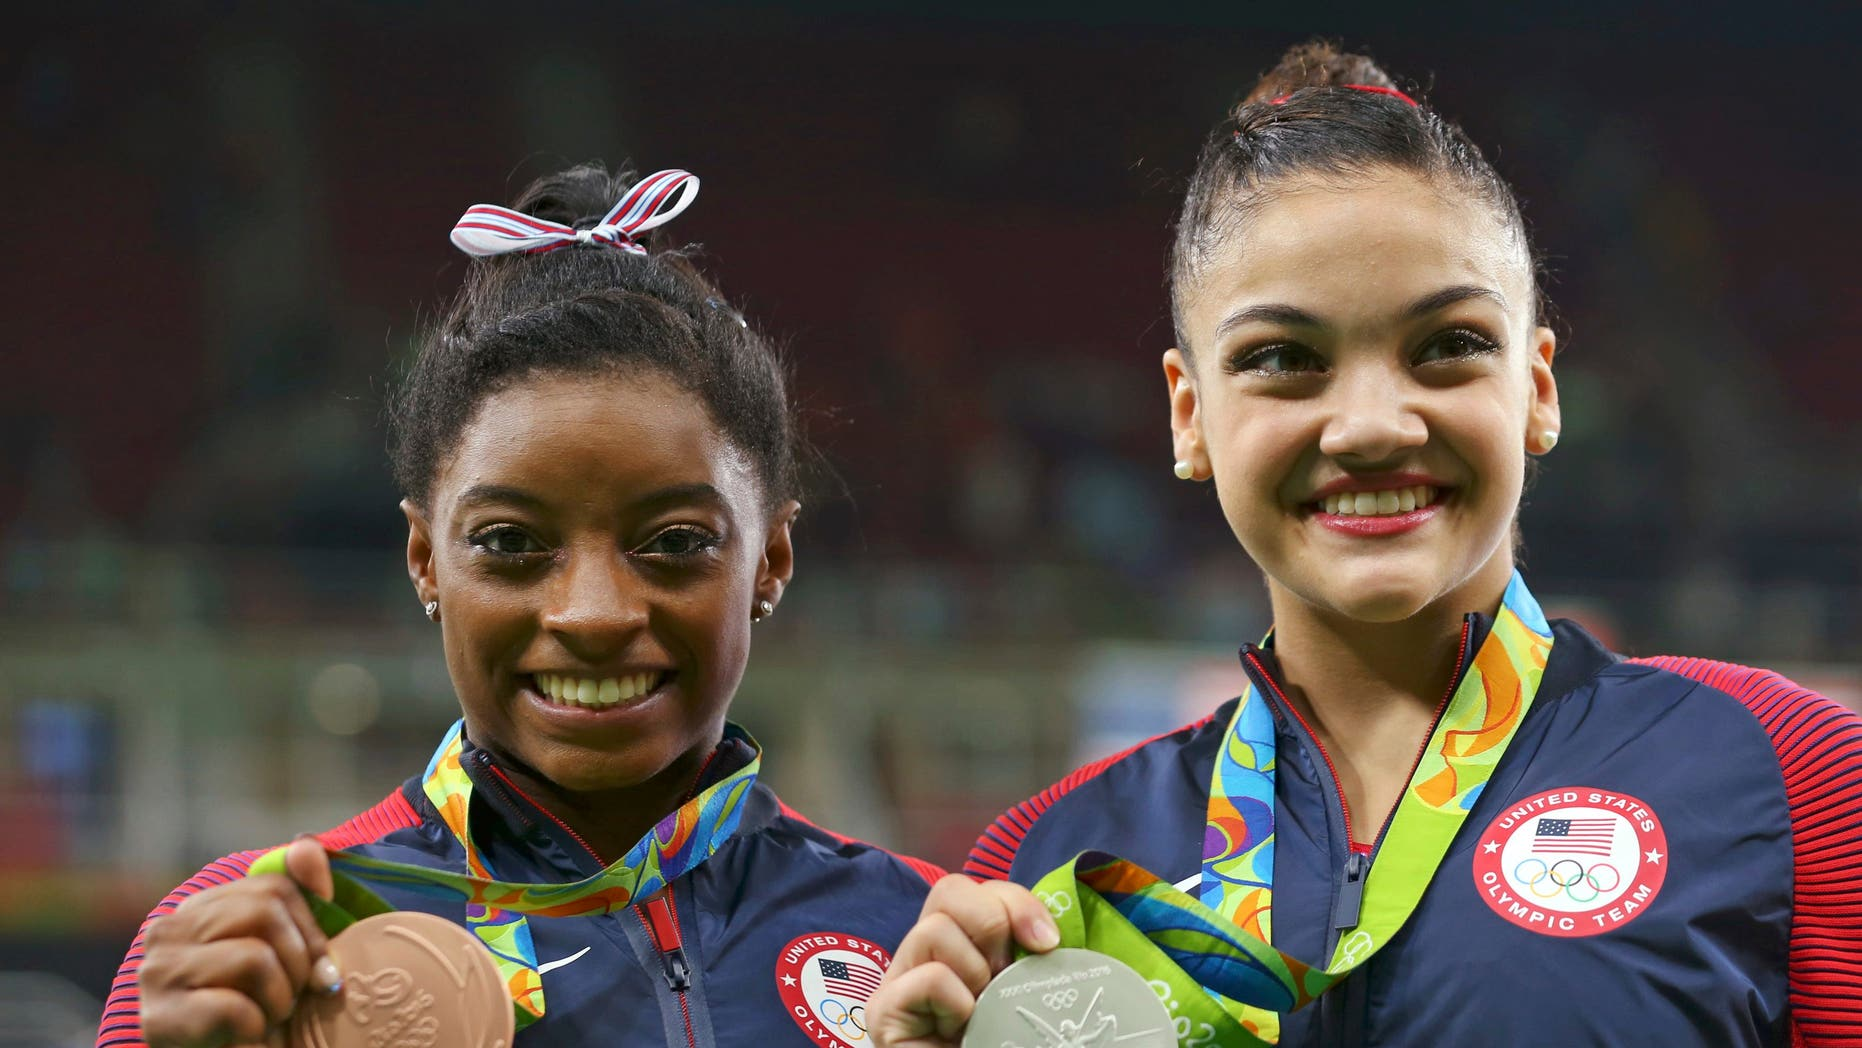 Silver medalist Laurie Hernandez (USA) of USA (R) and bronze medalist Simone Biles (USA) of USA (L) pose with their medals.